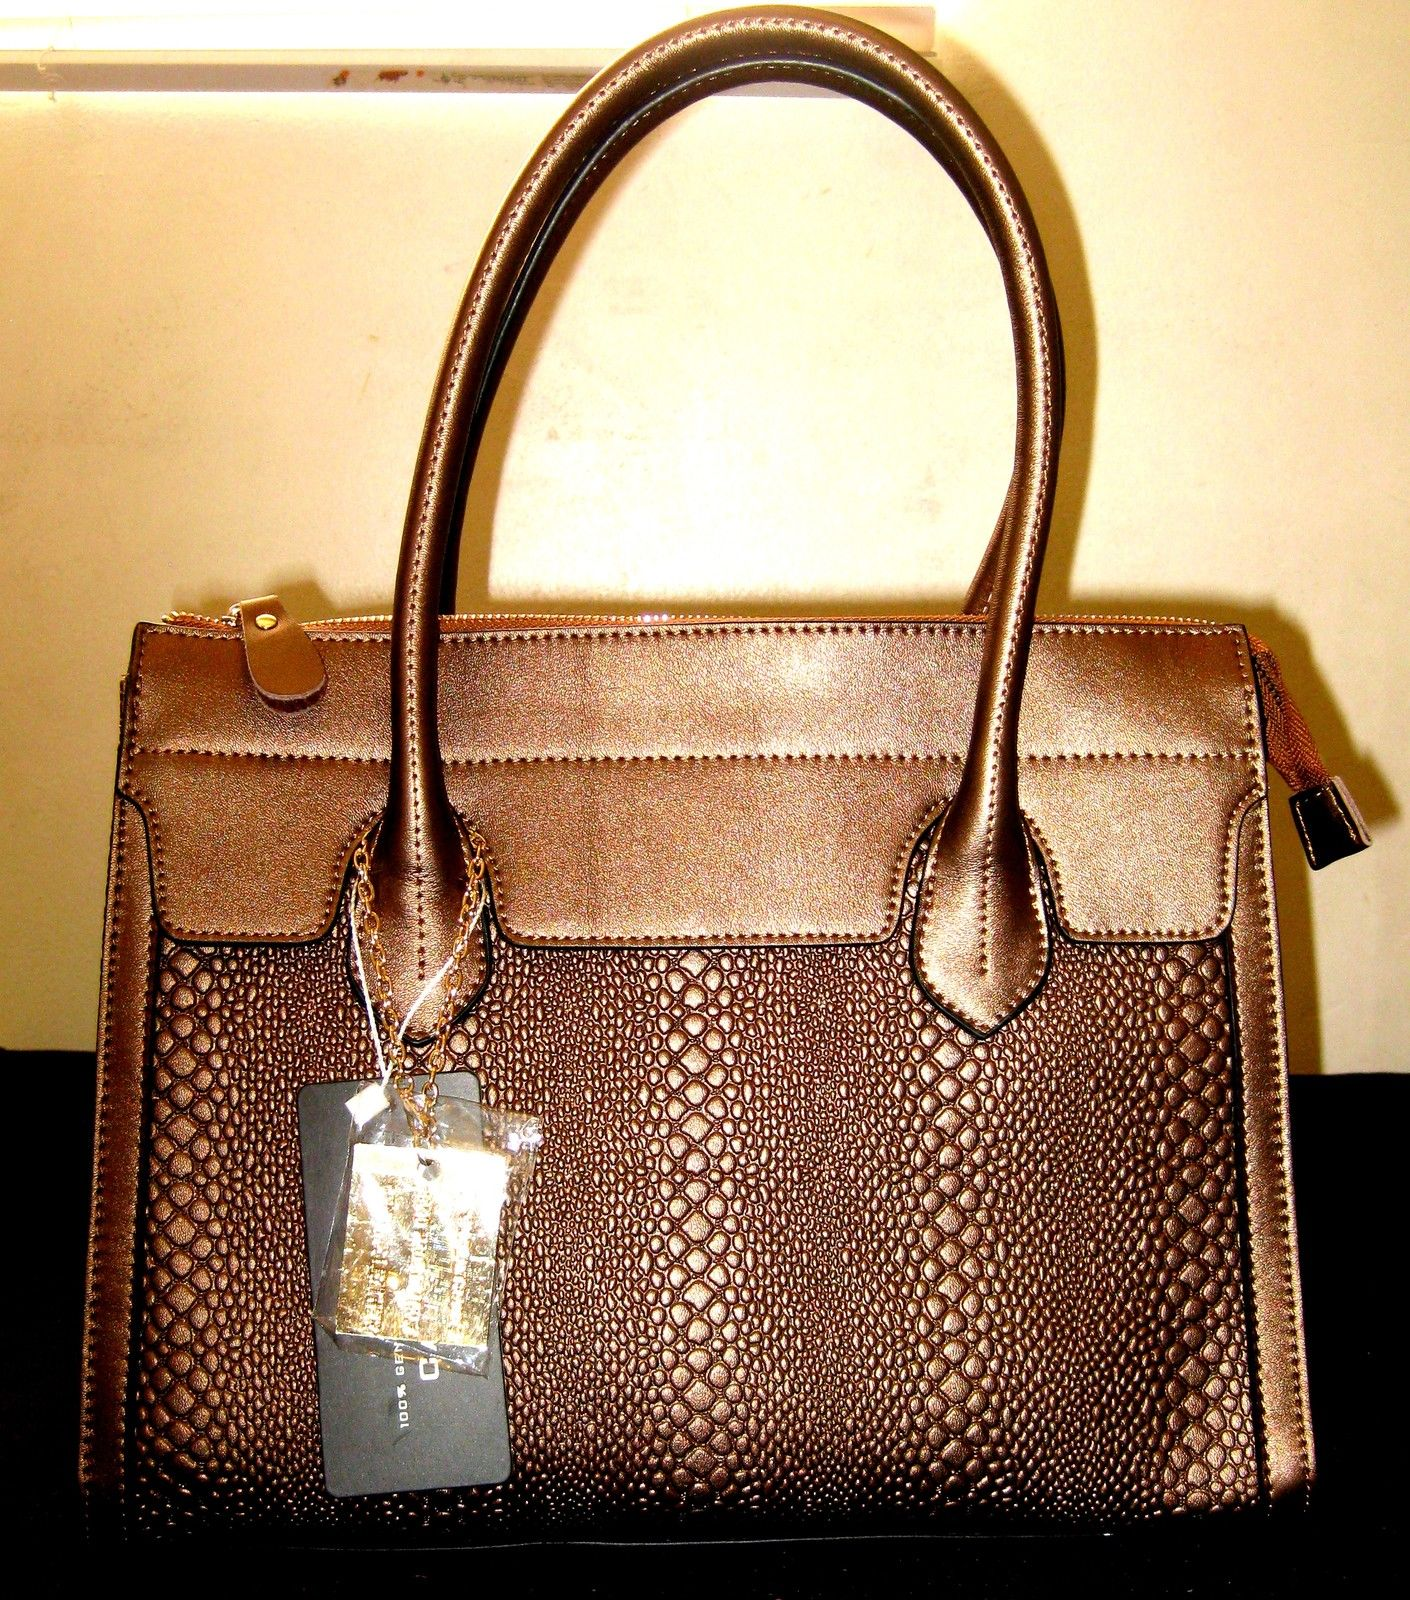 100% Genuine Italy Top Great Cowhide In Snakeskin, Bronze Color Leather Tote